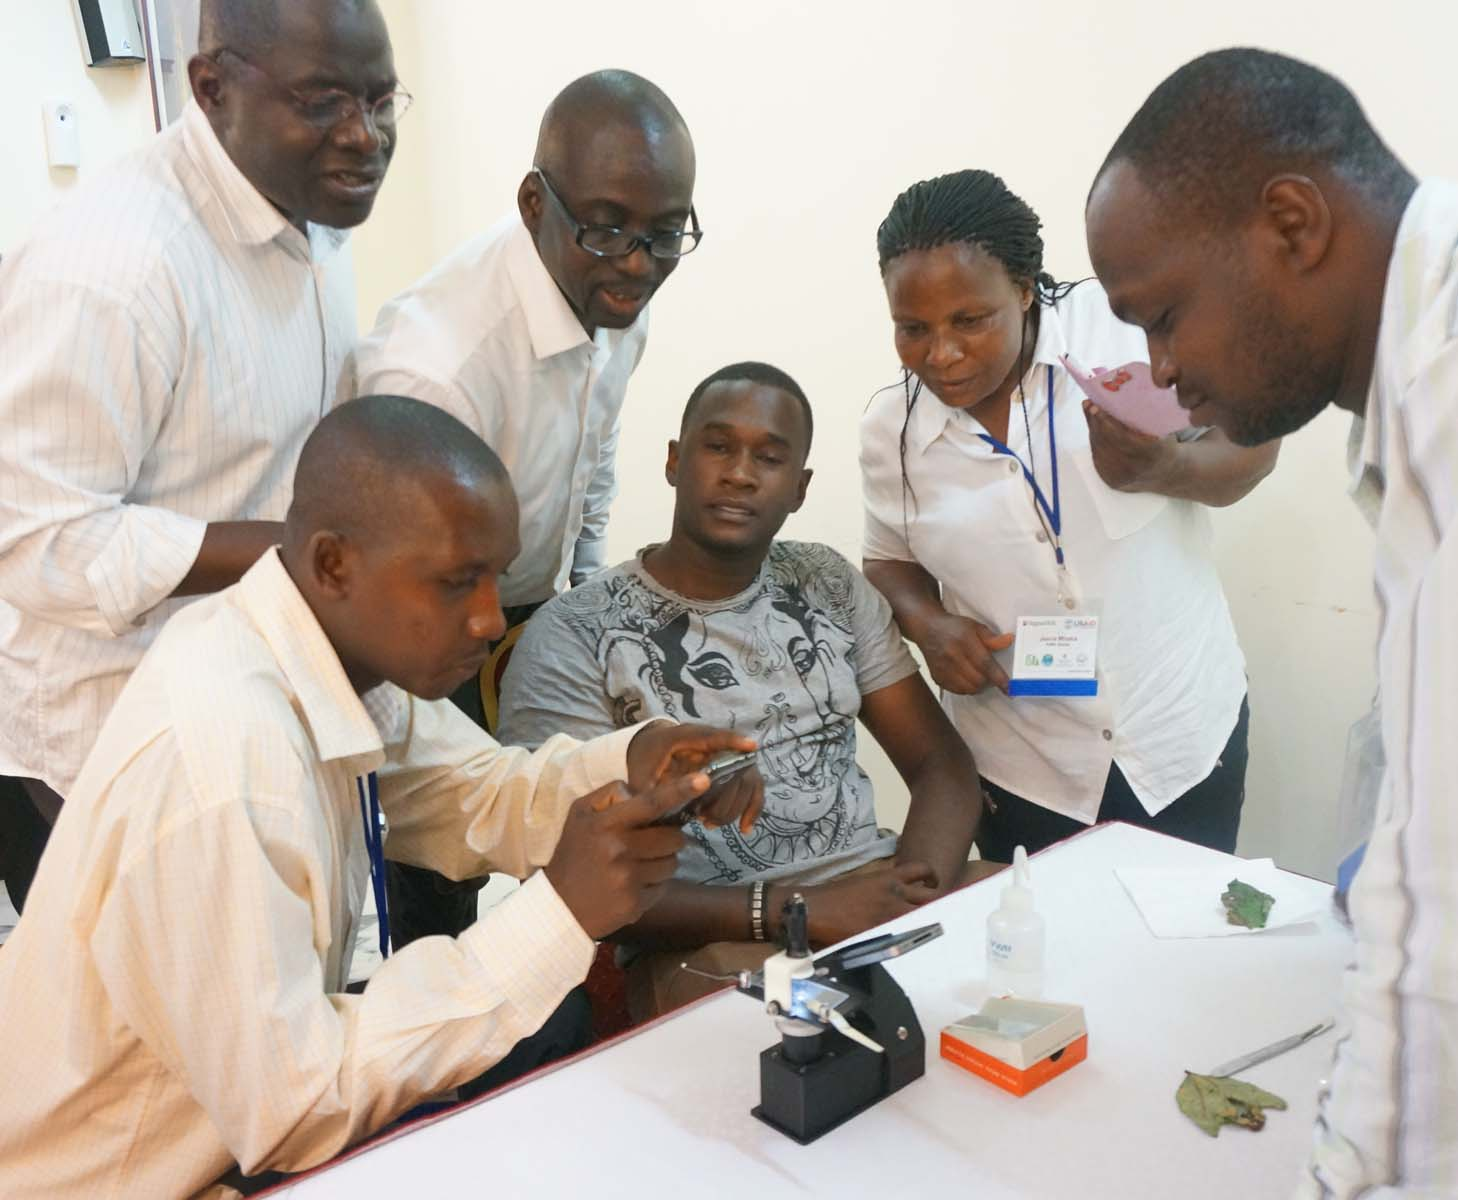 African scientists examine microscope